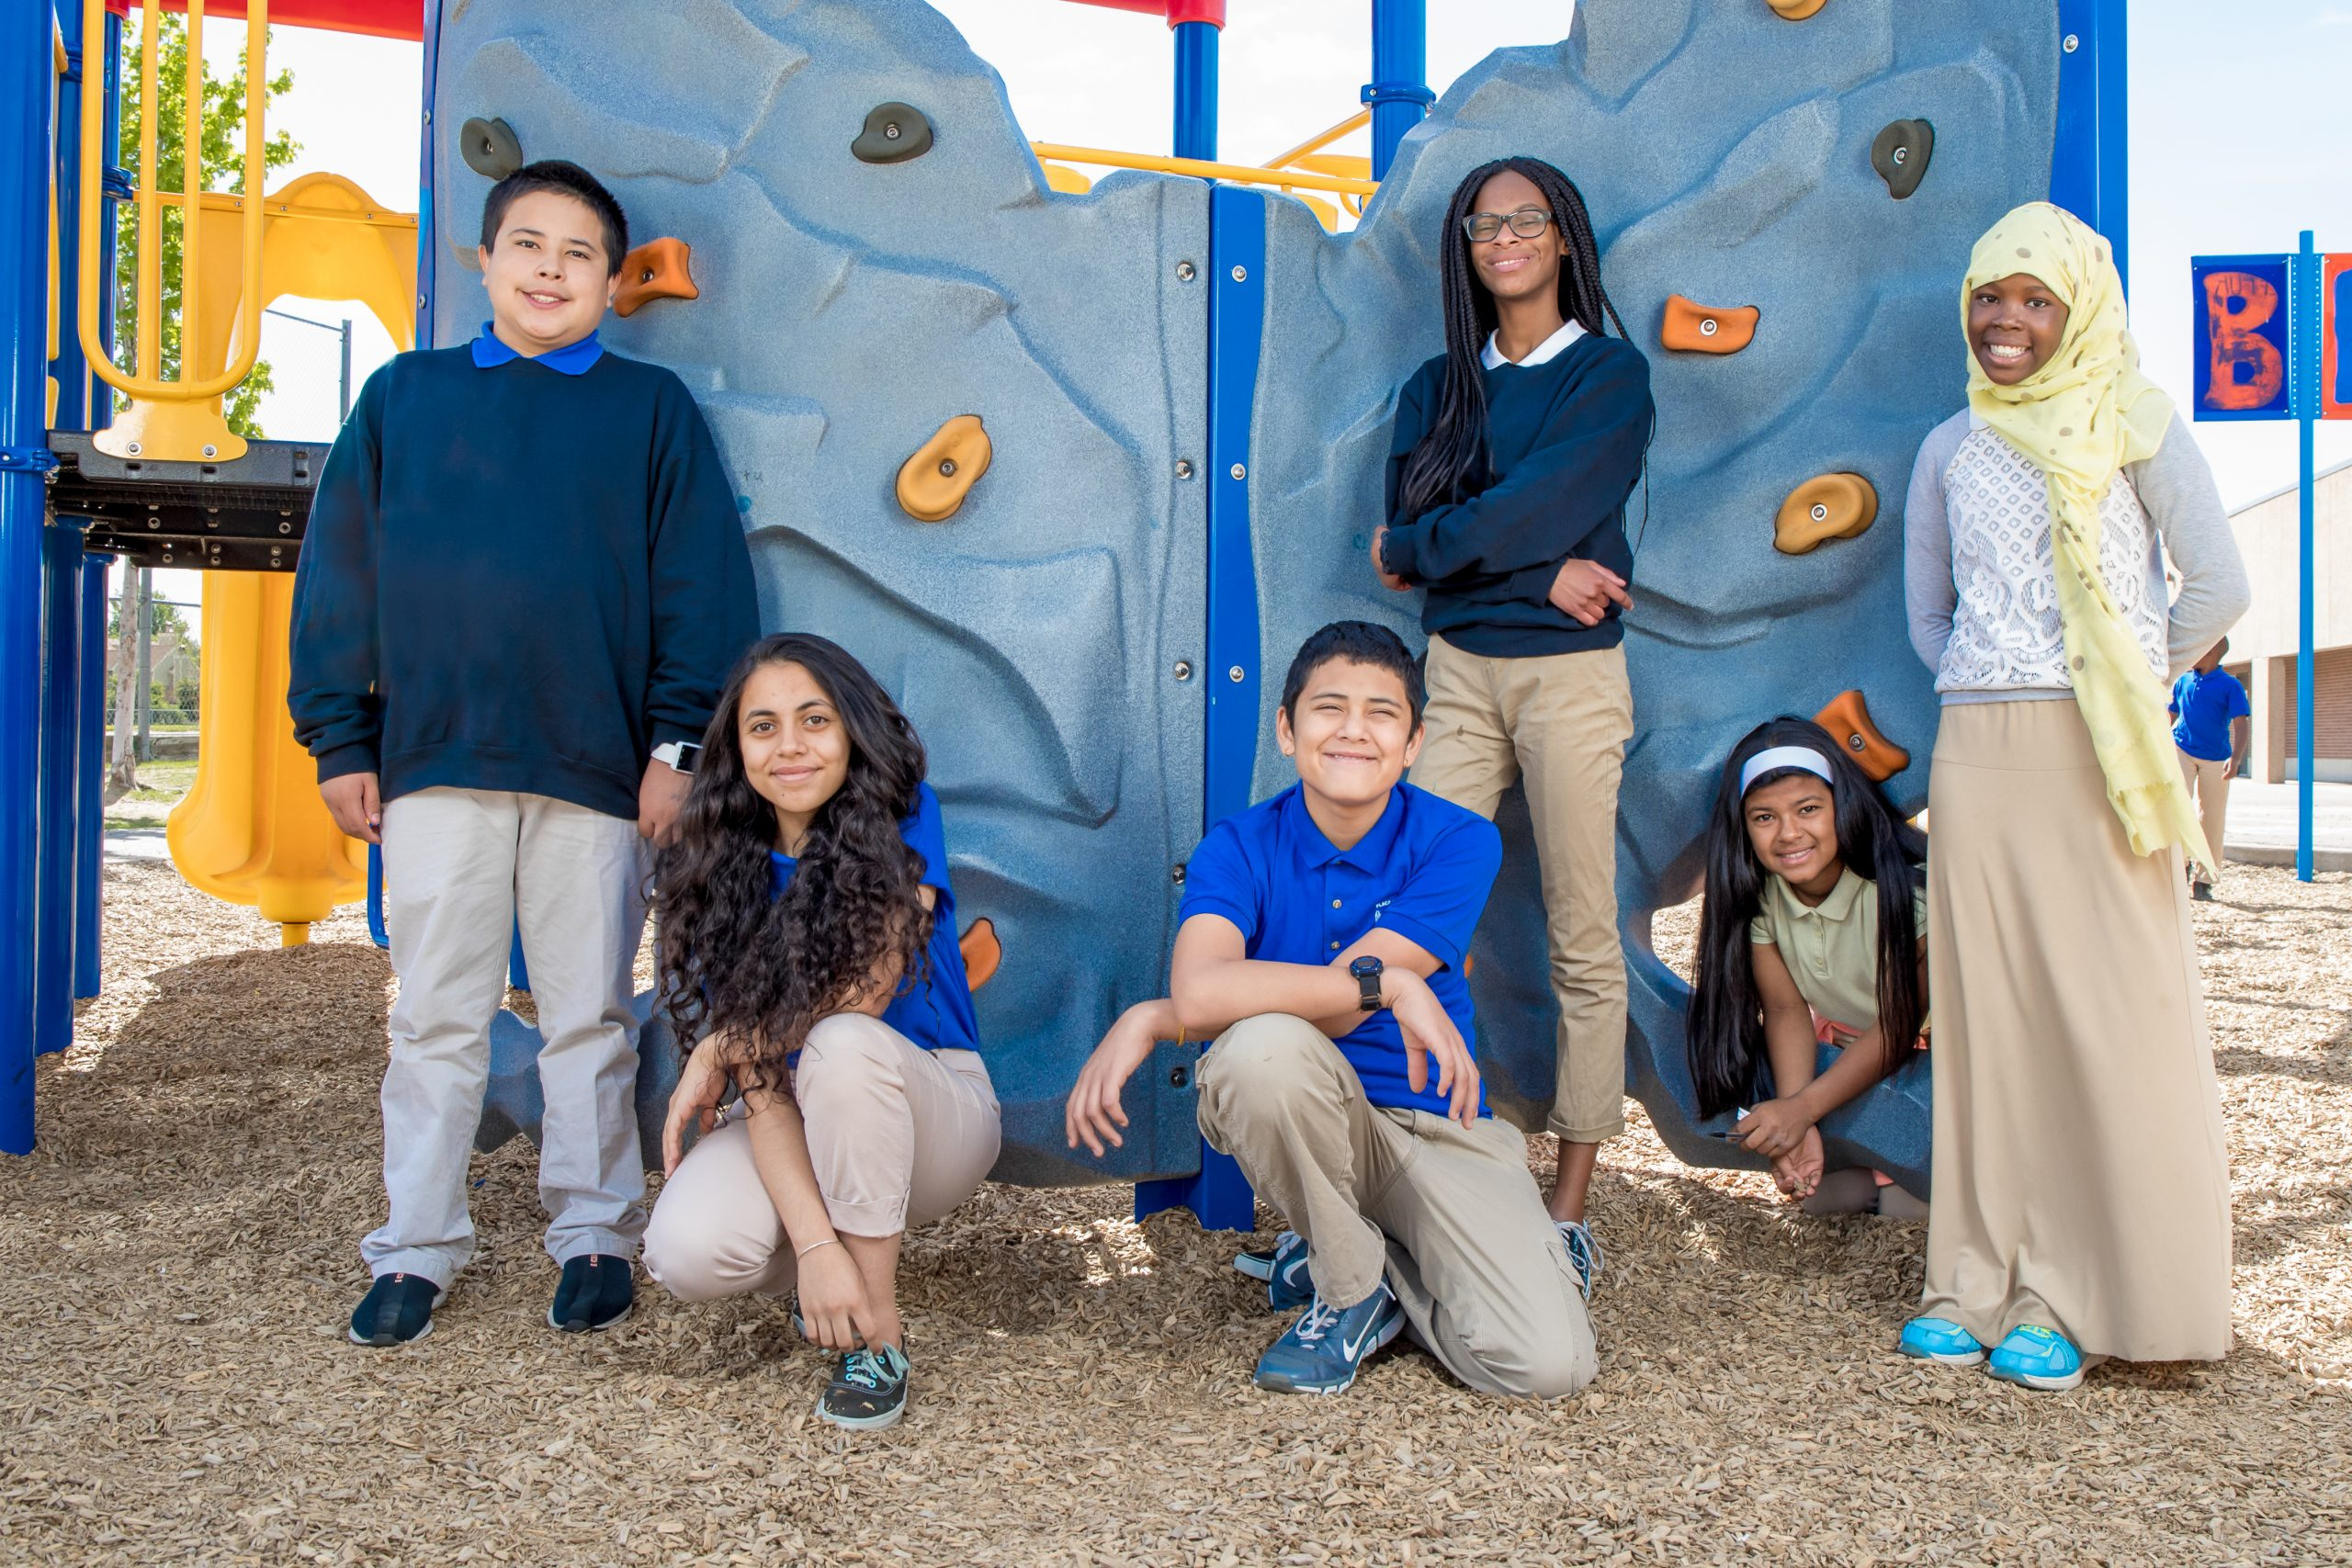 Six students on the playground